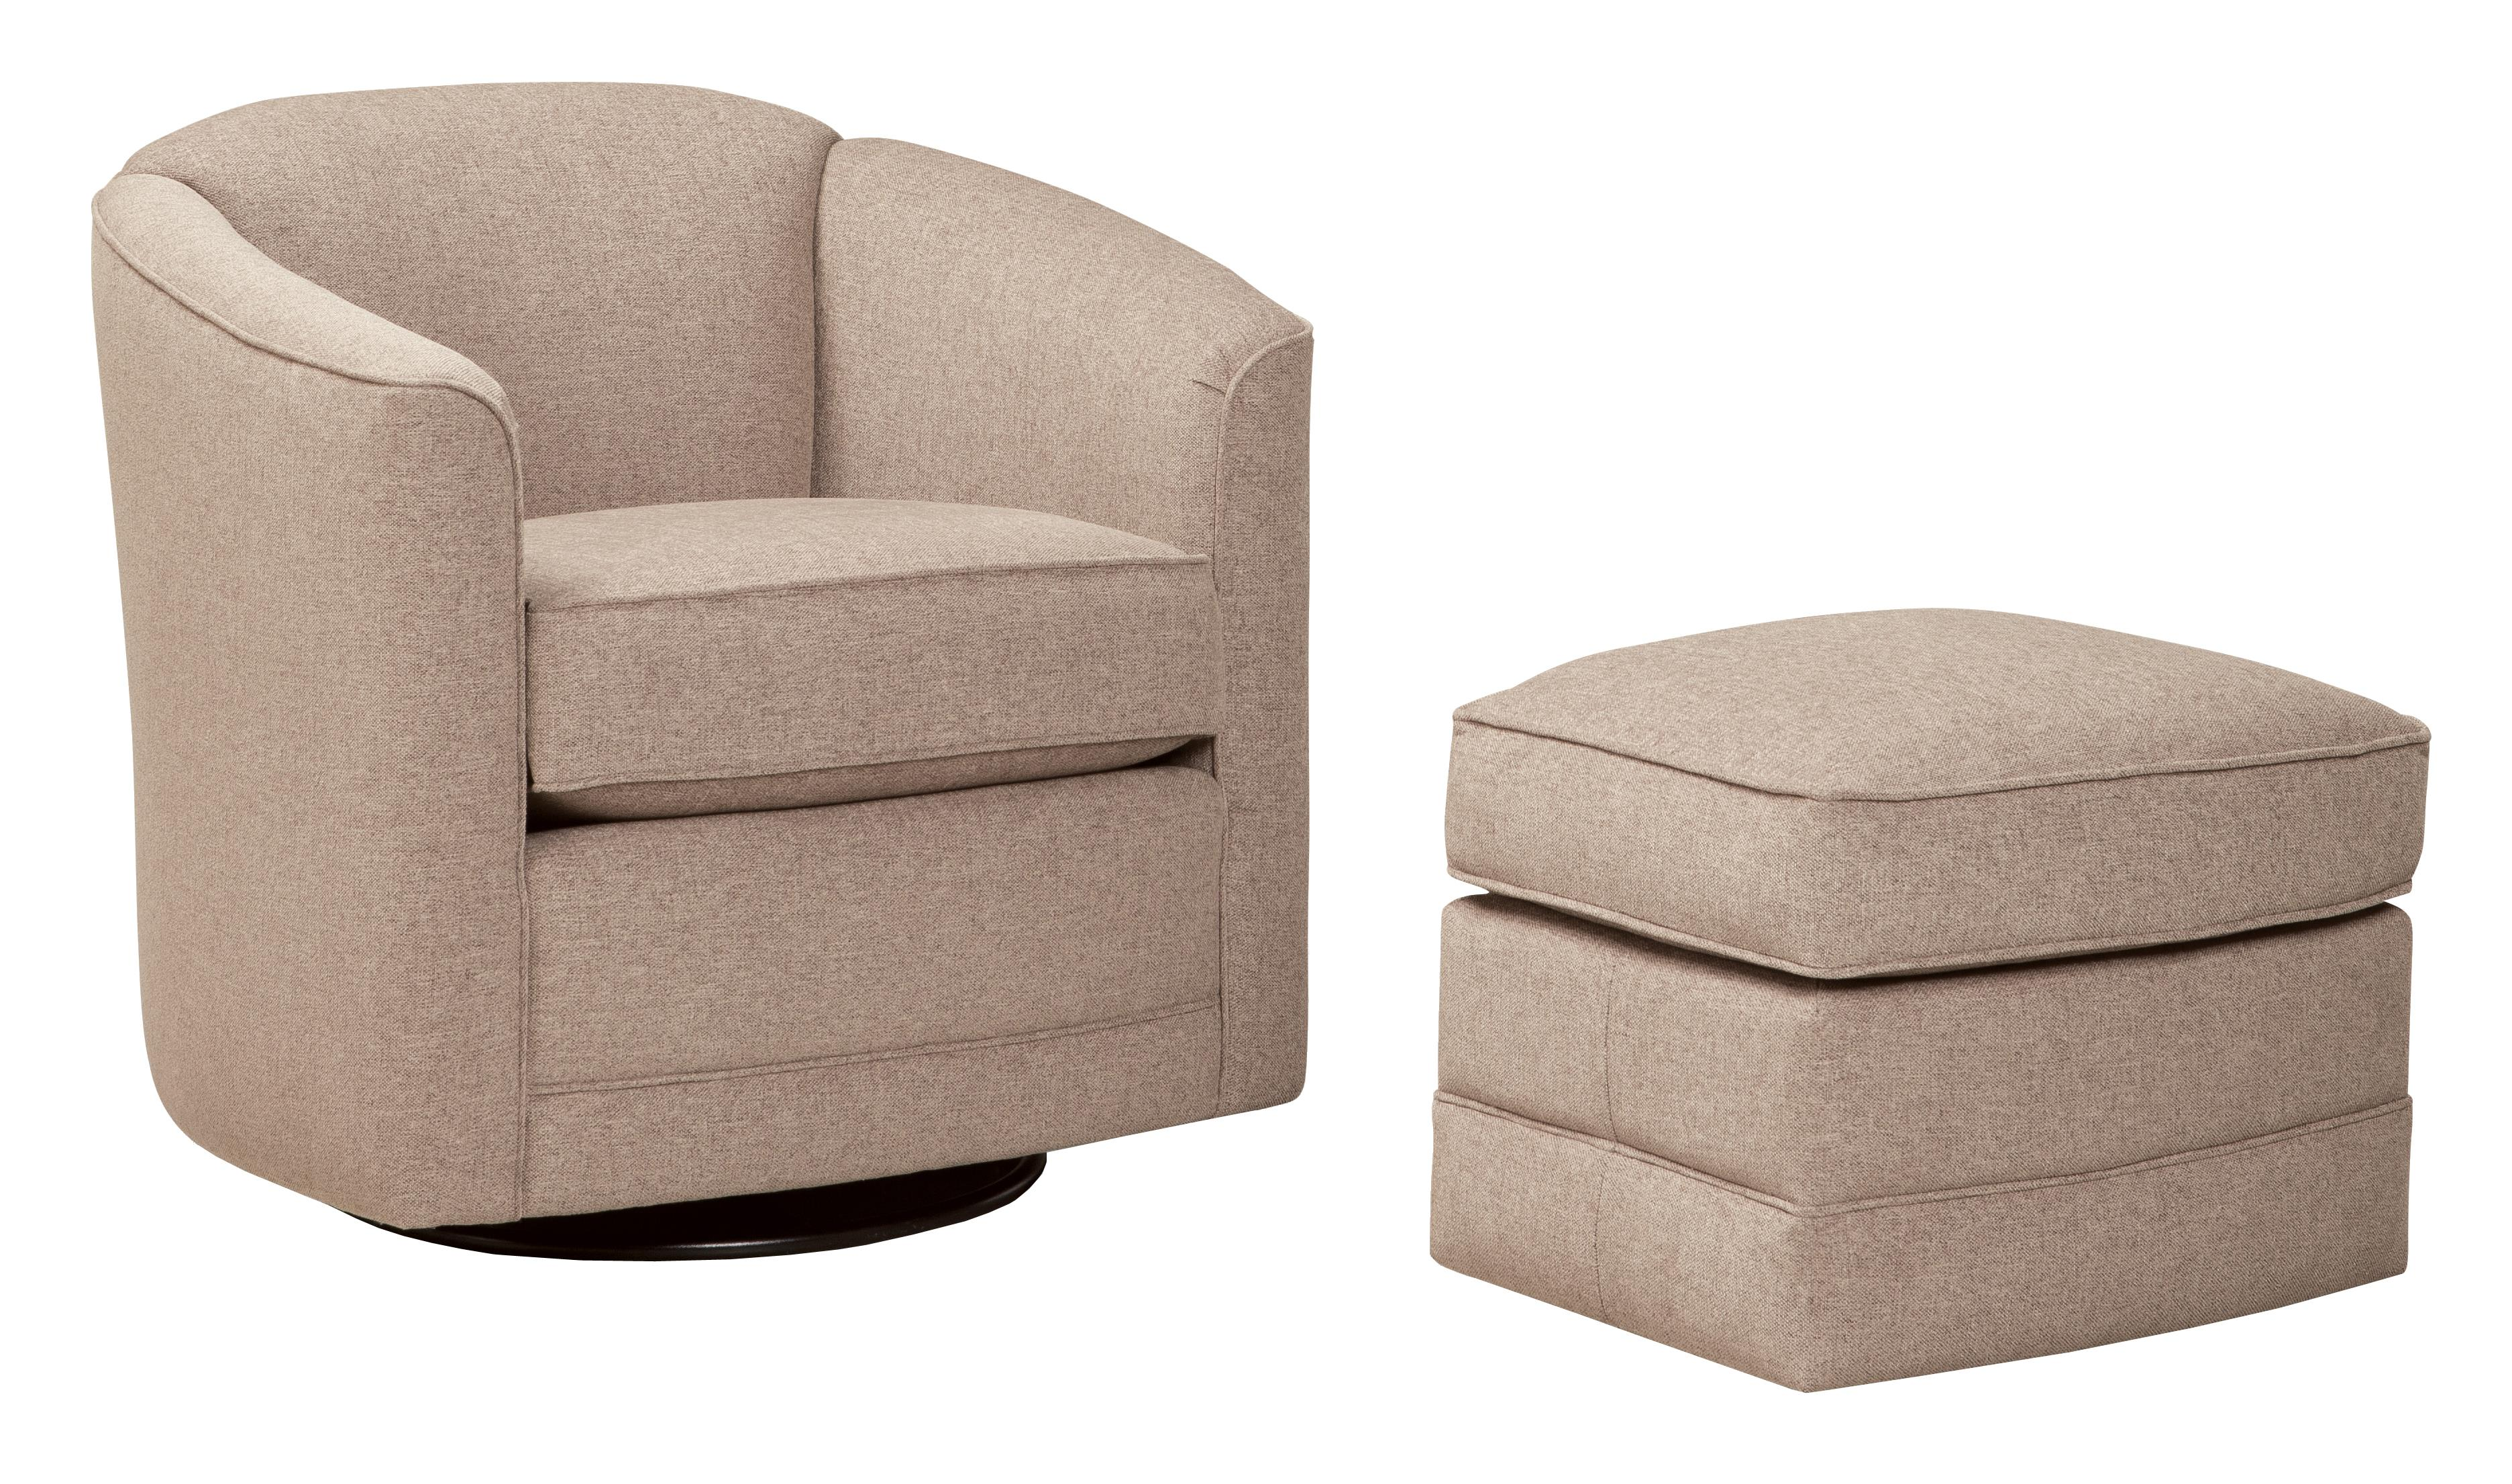 Swivel Chair and Ottoman Set